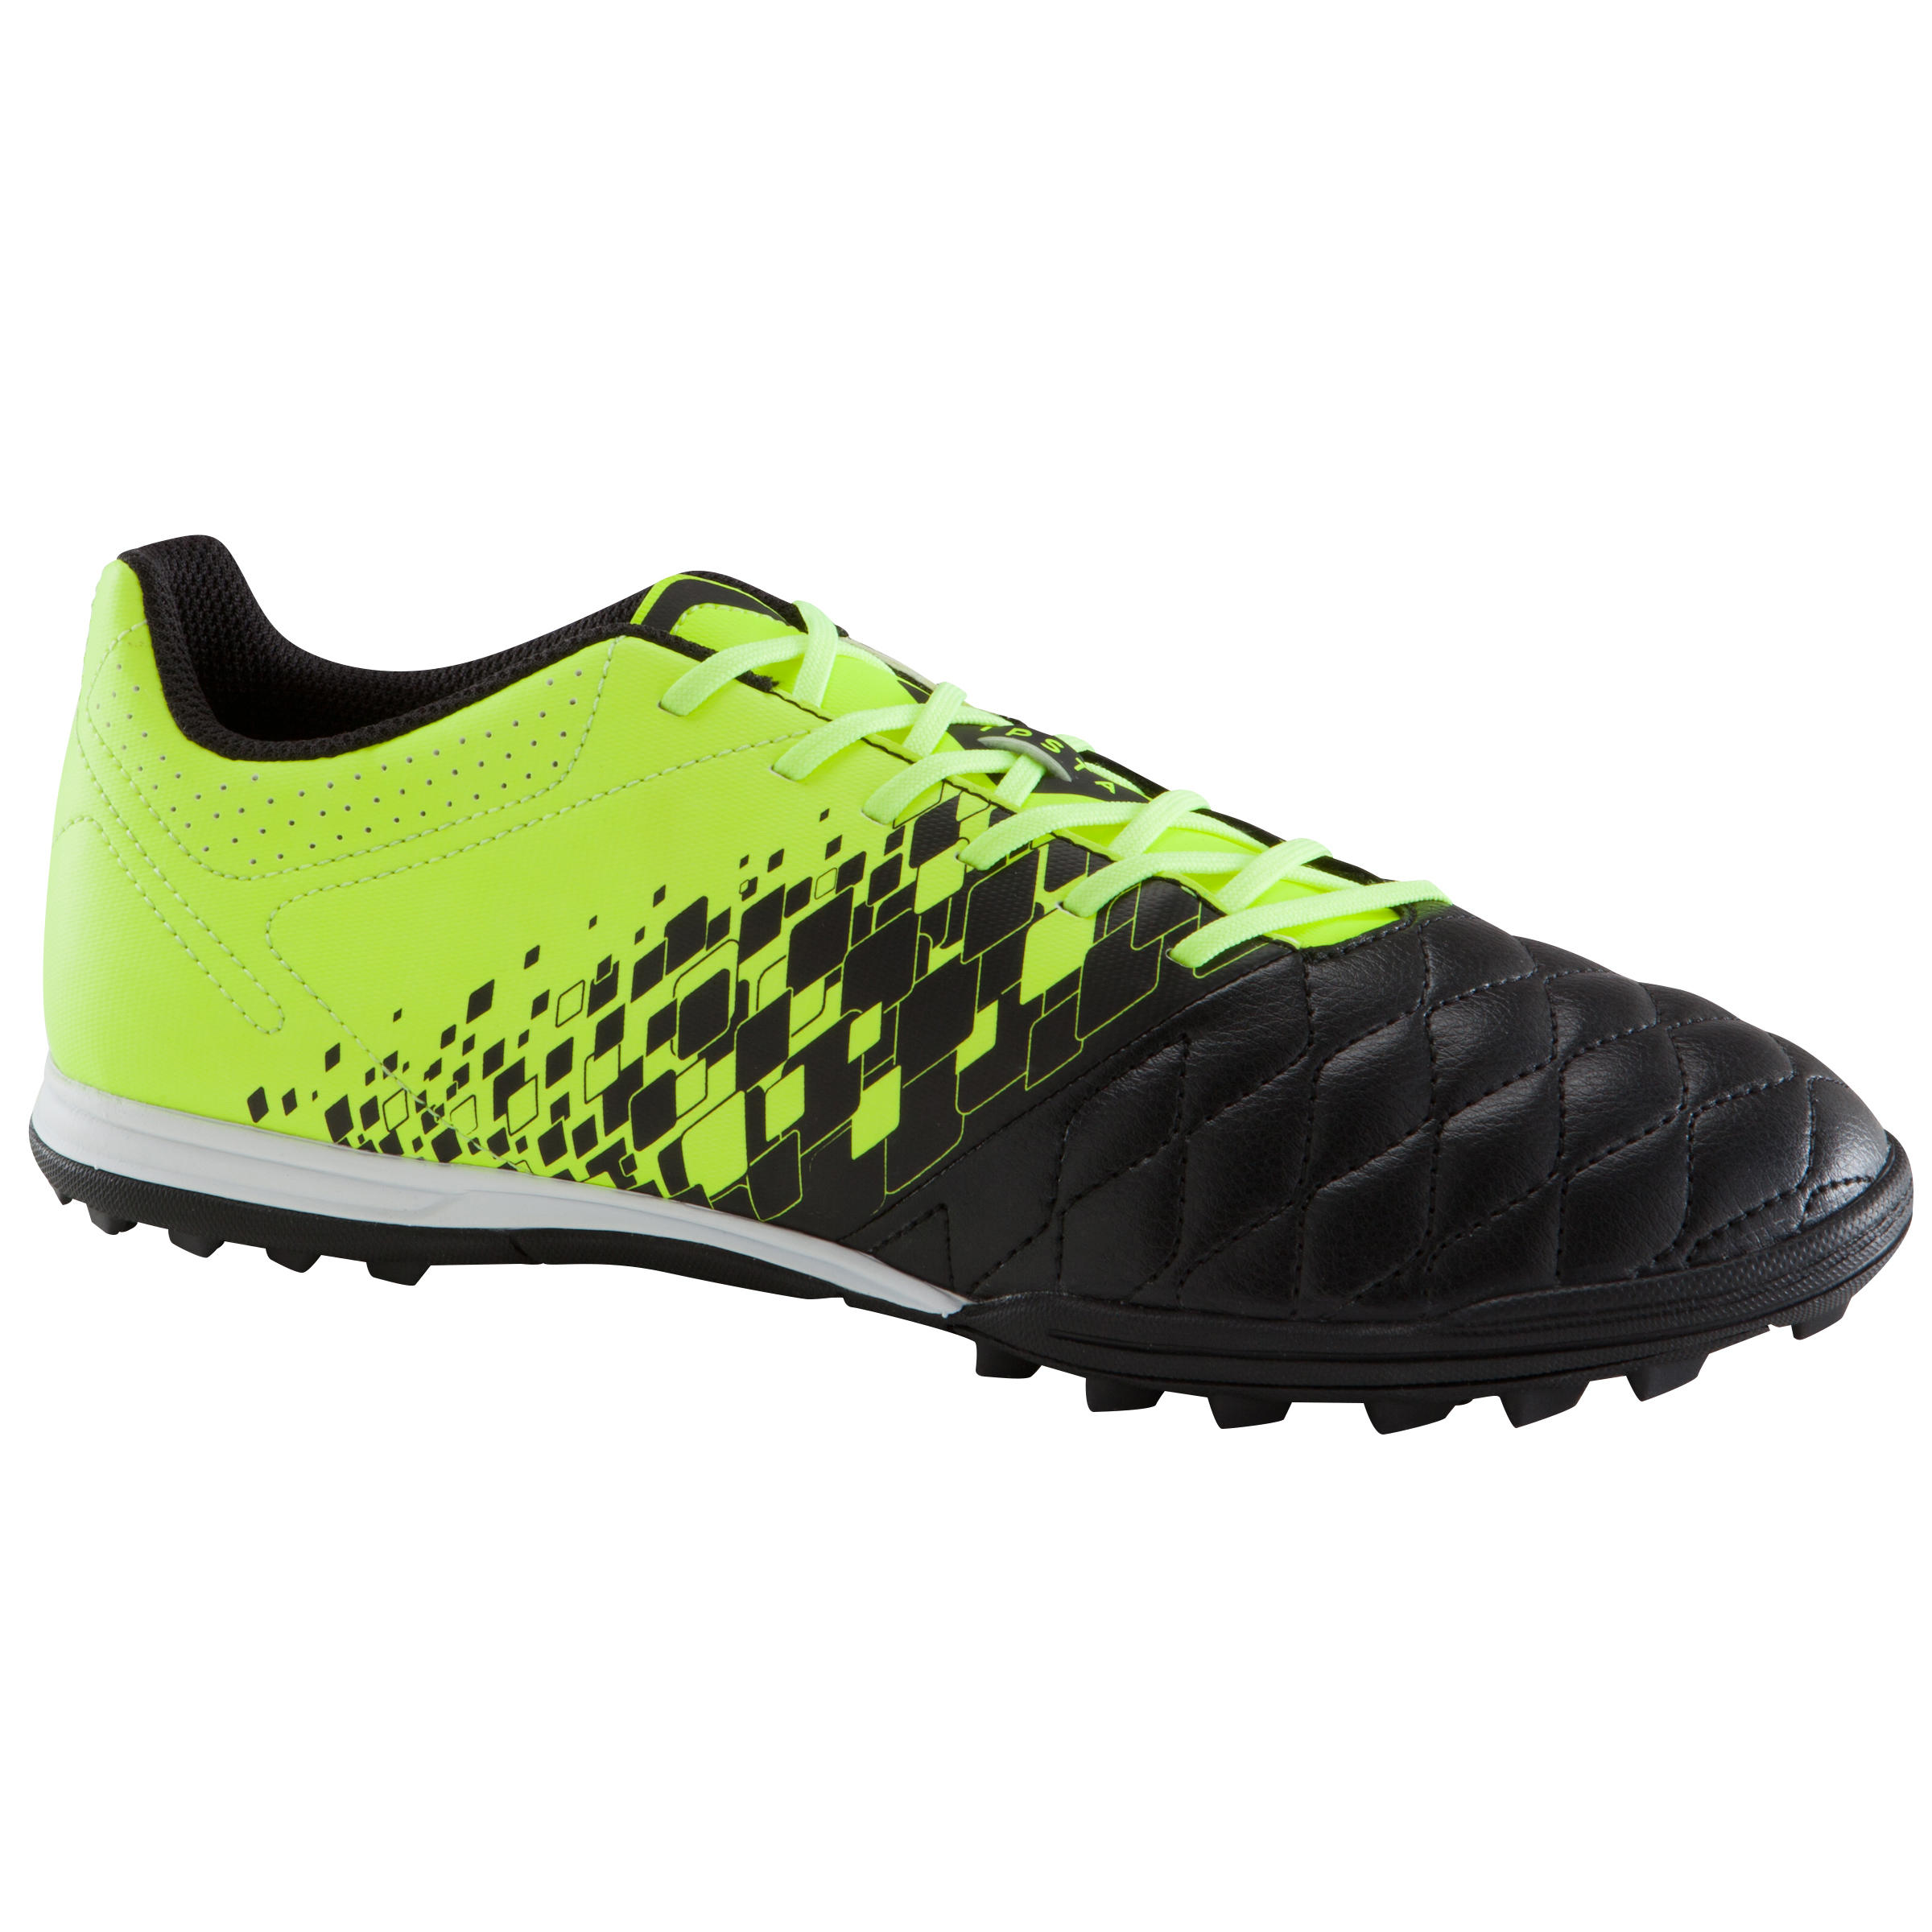 Agility 500 HG Adult Hard Pitches Soccer Cleats - Black/Yellow